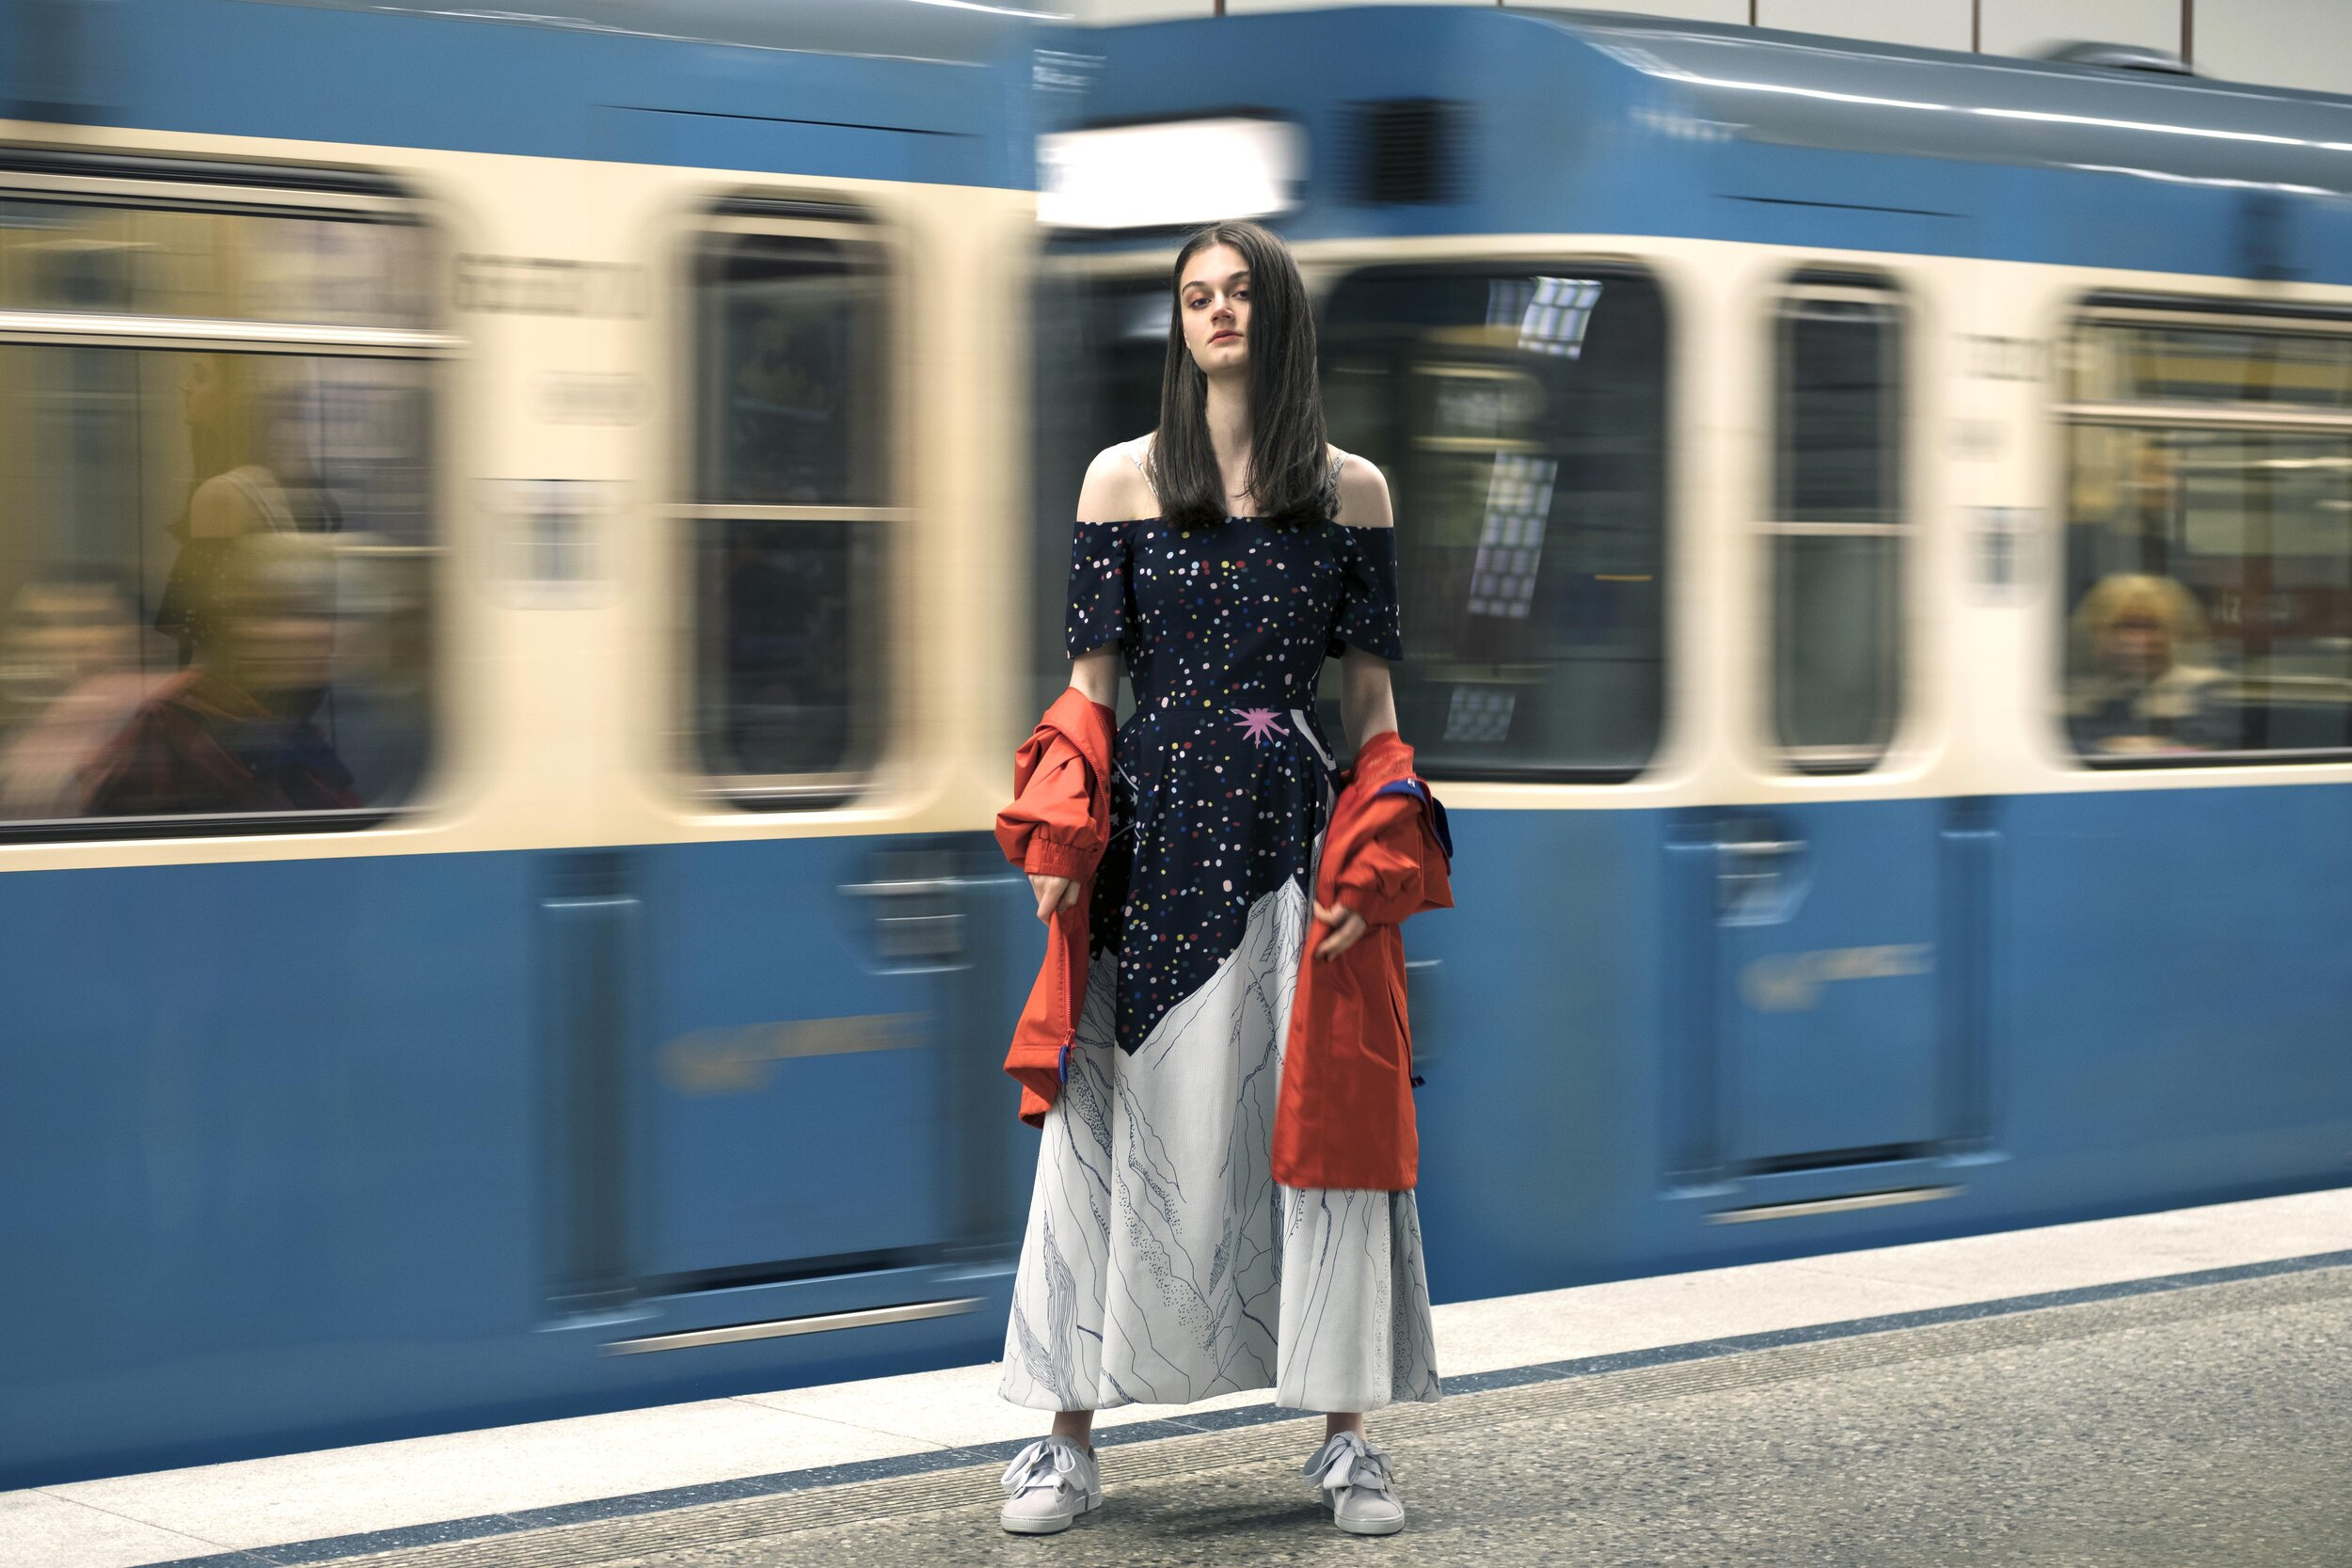 Copy of REEMAMI SS17 CAMPAIGN 4_re.jpg